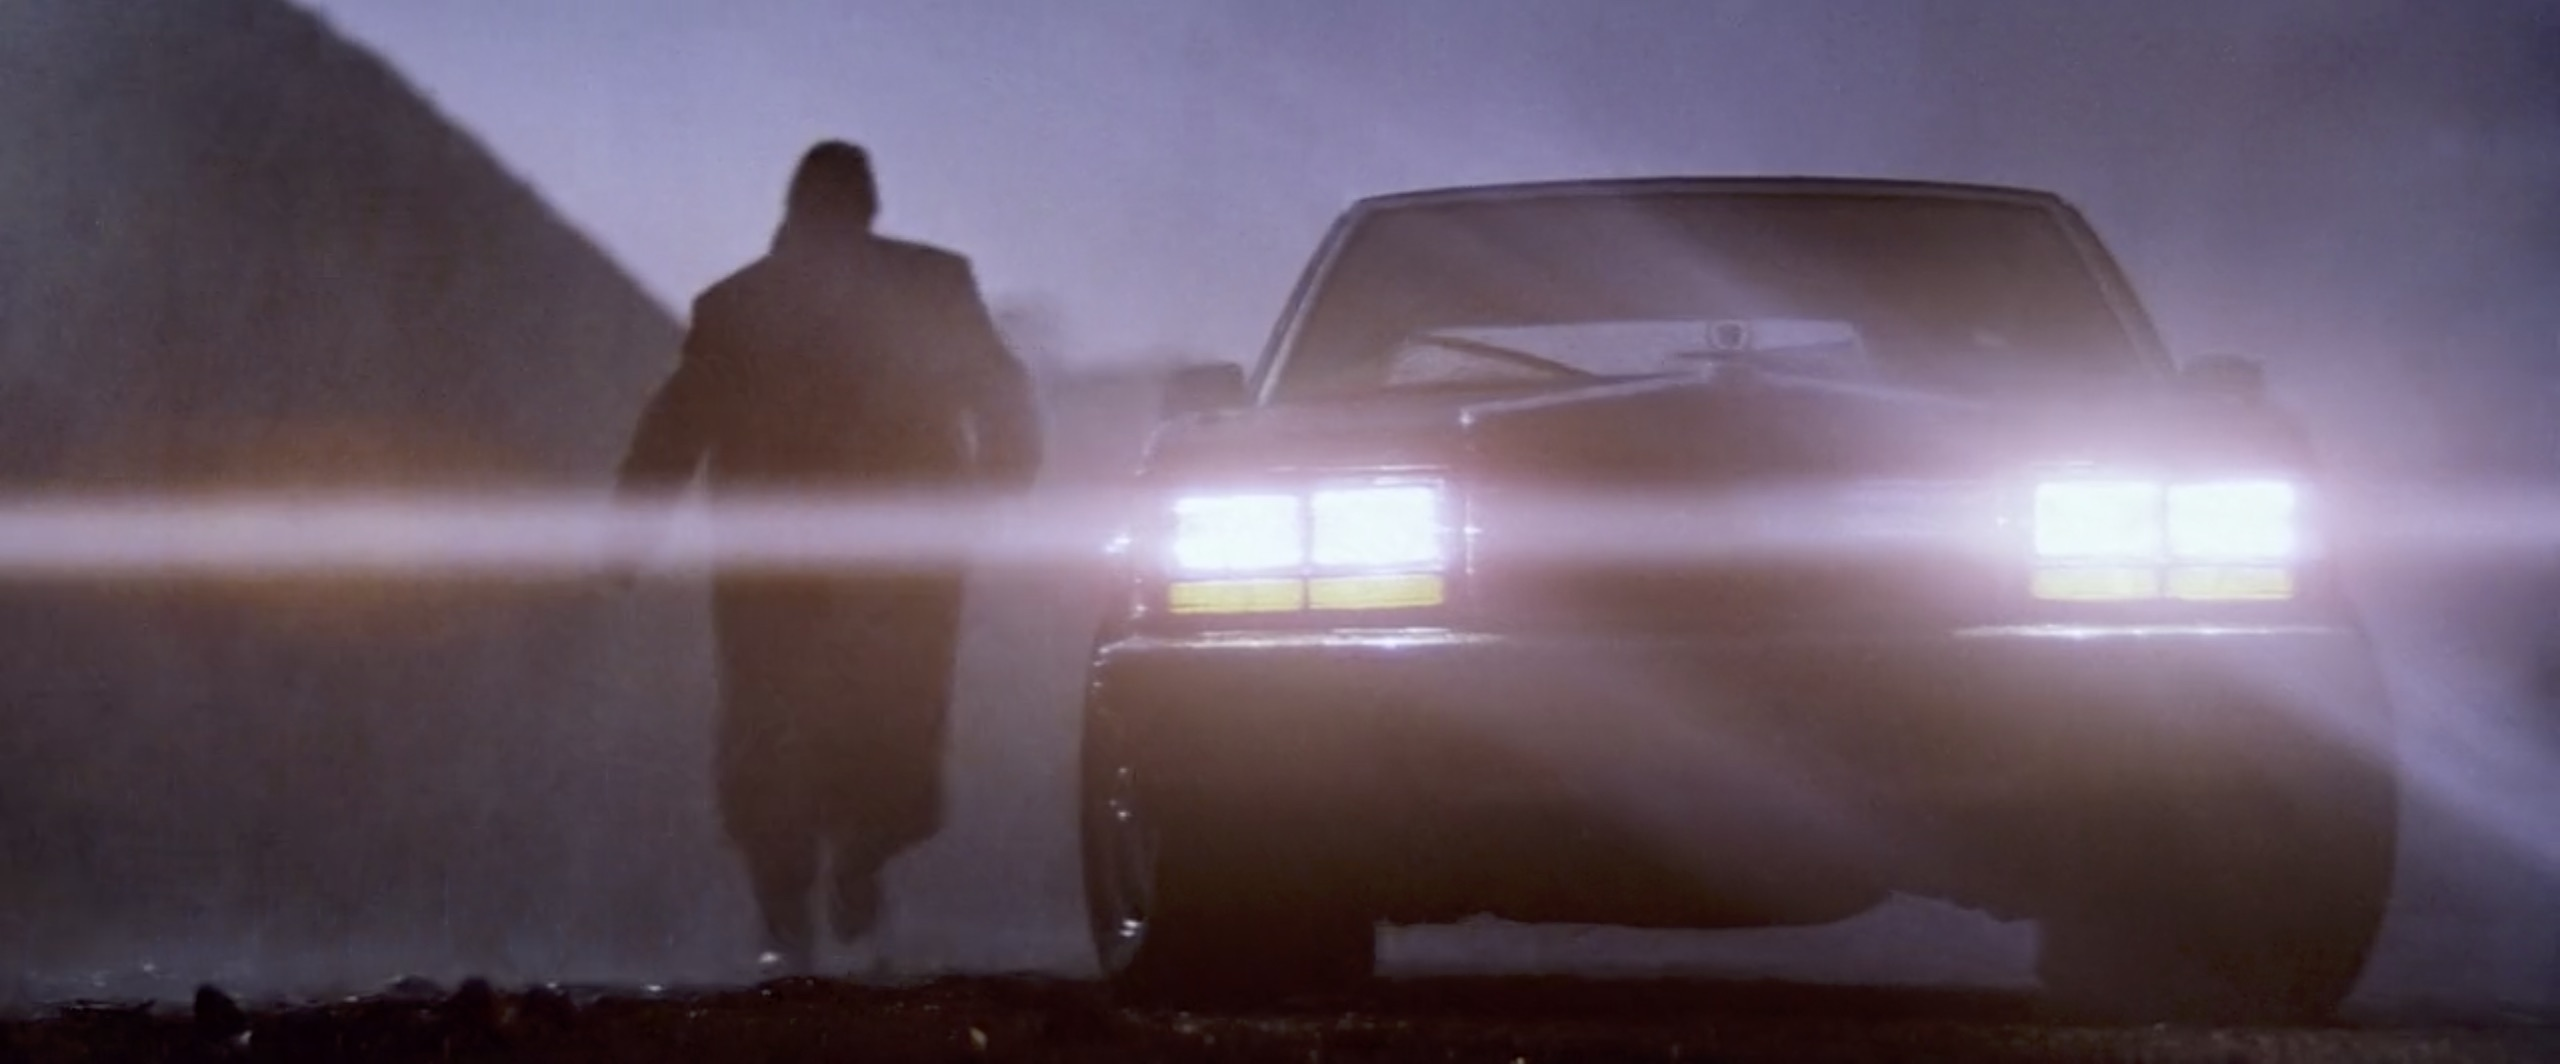 The Hitcher play on our deepest fears of the American road